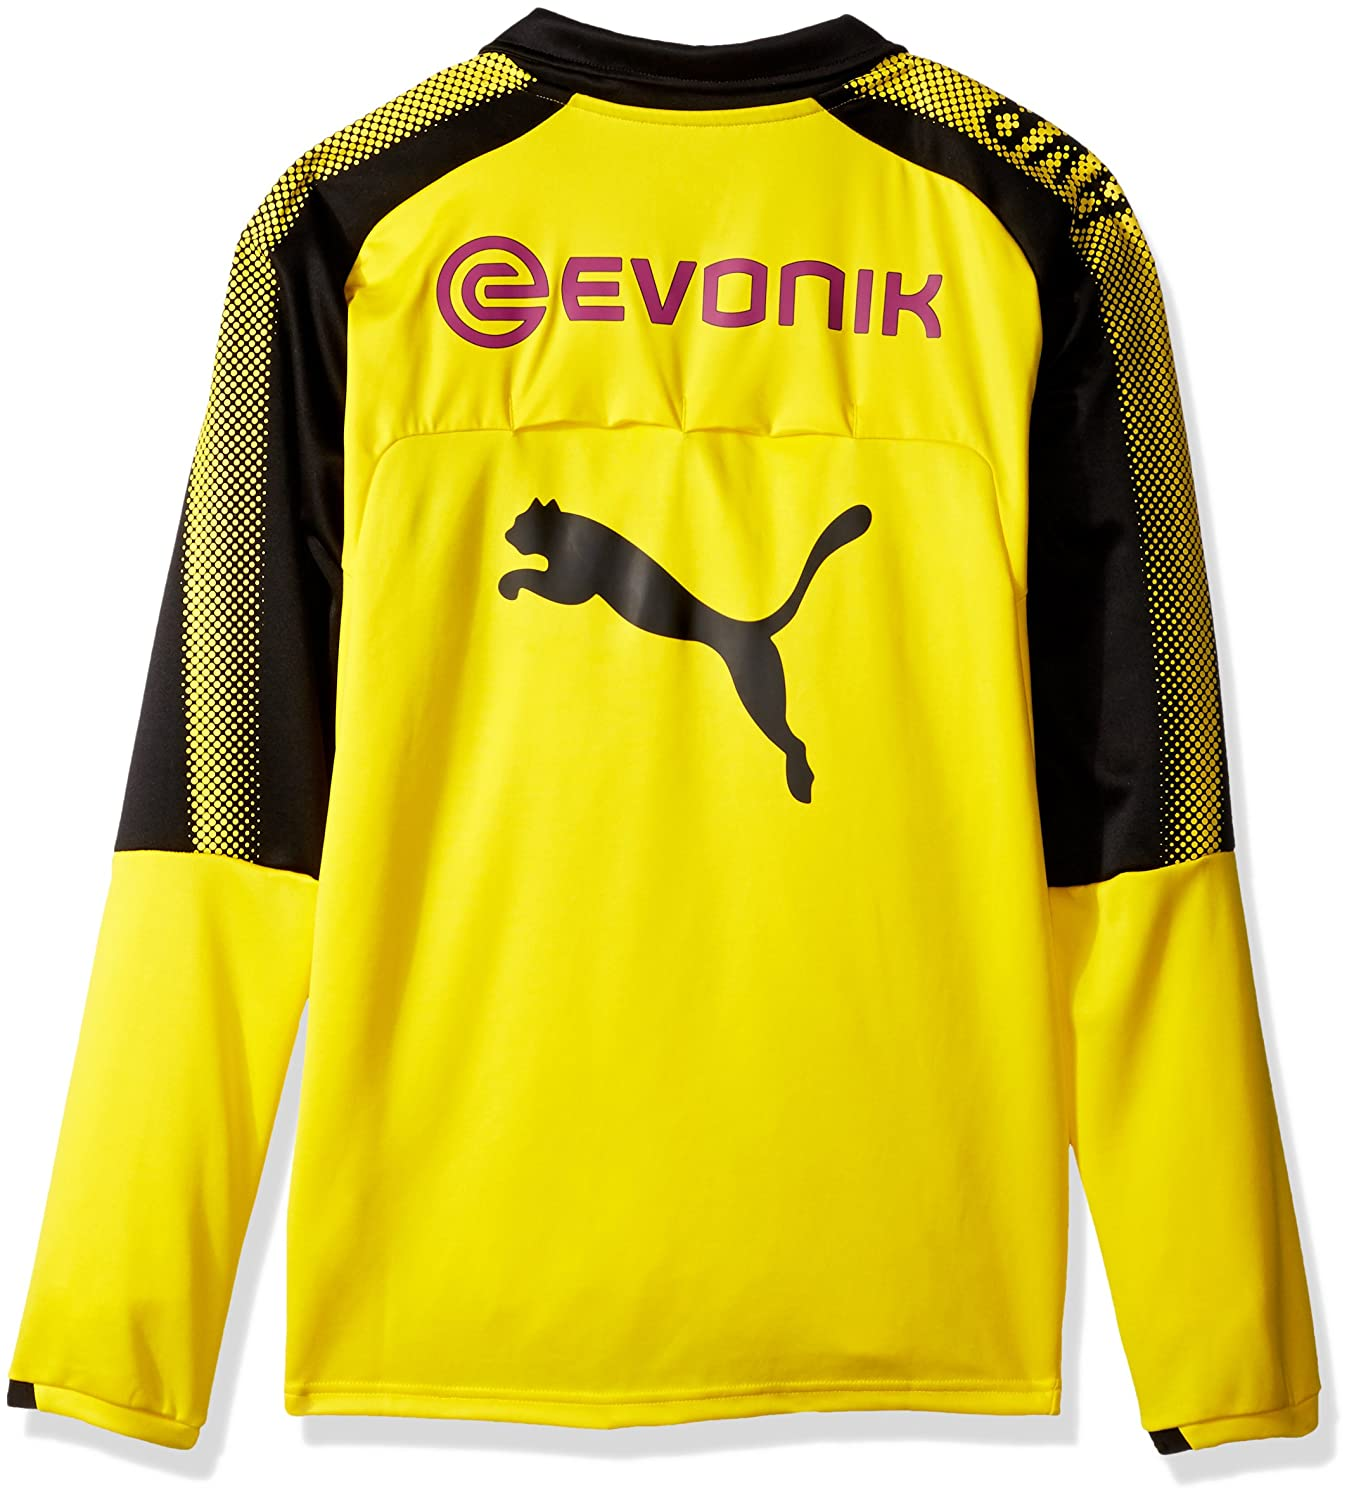 eff316d9c Amazon.com  PUMA Men s BVB 1 4 Training Top with Sponsor Logo  Clothing